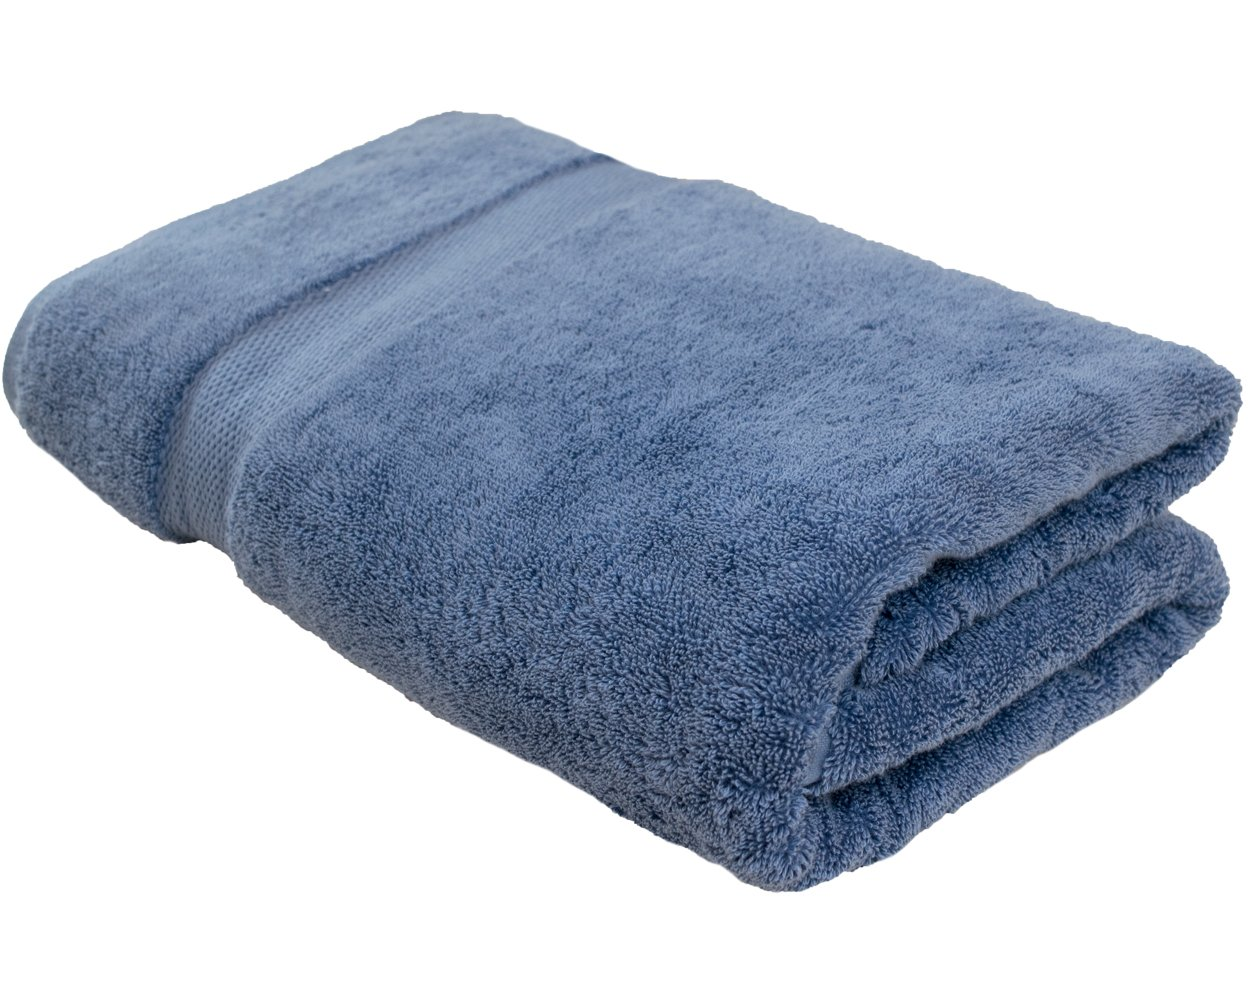 Cotton & Calm Exquisitely Plush and Soft Oversized Bathsheet Towel, Blue - 1 Extra Large Bath Towel (35'' x 70'') - Spa Resort and Hotel Quality, Super Absorbent 100% Cotton Luxury Bathroom Towels